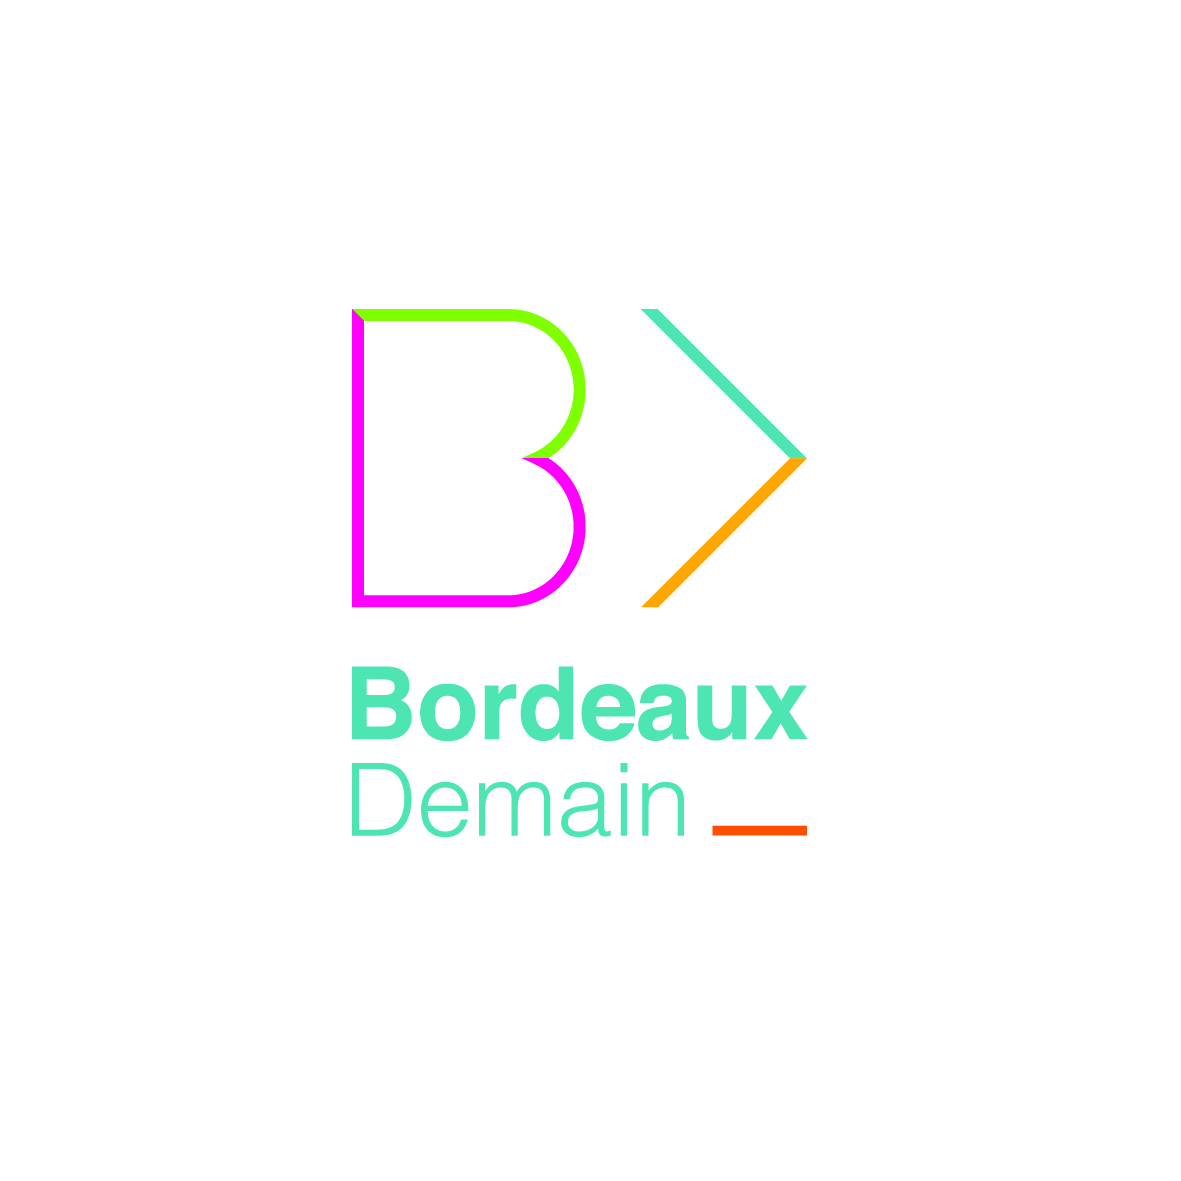 Association - Bordeaux demain